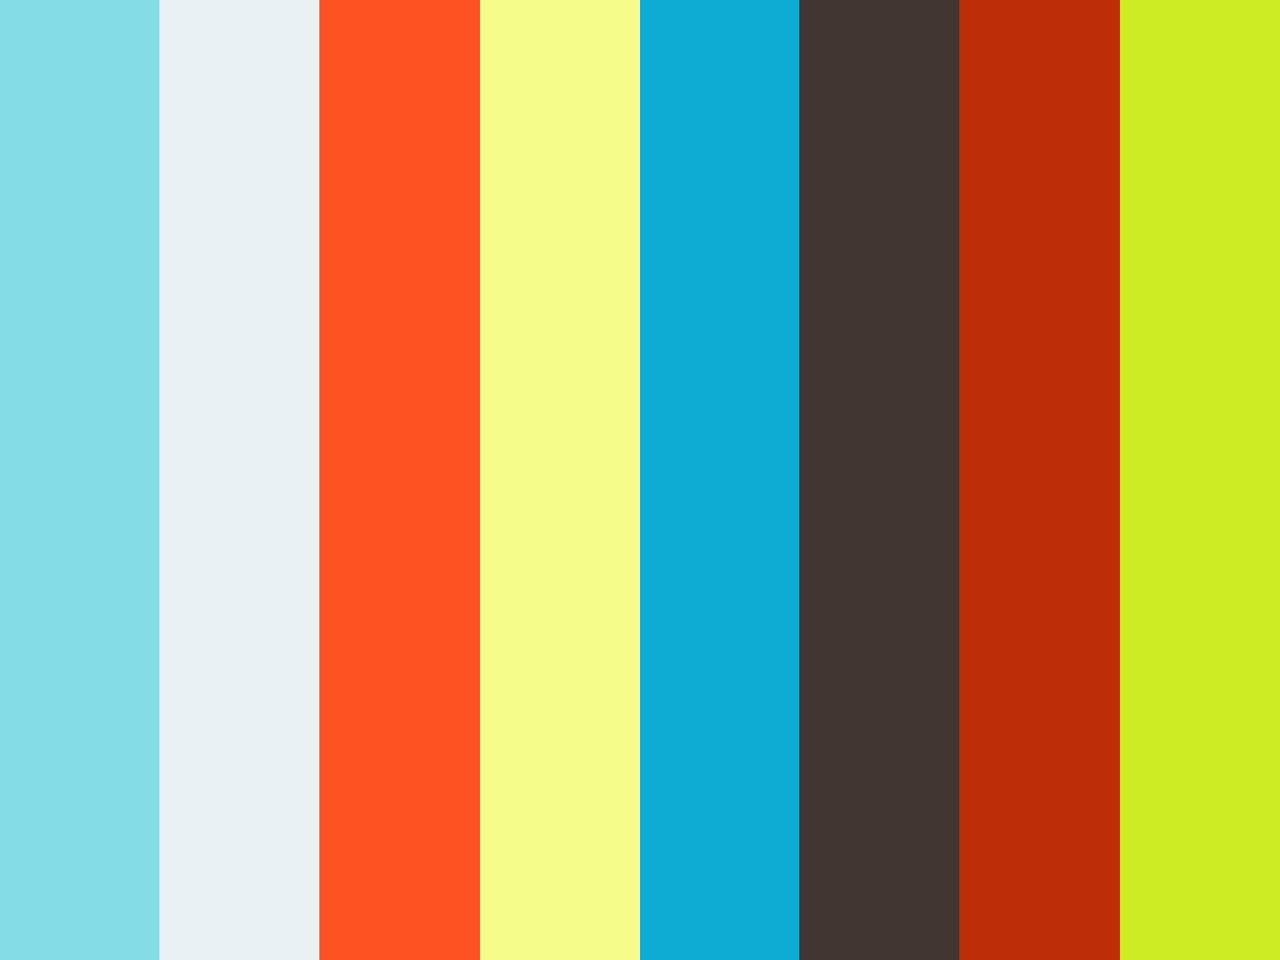 faire l 39 amour de jean philippe toussaint on vimeo. Black Bedroom Furniture Sets. Home Design Ideas